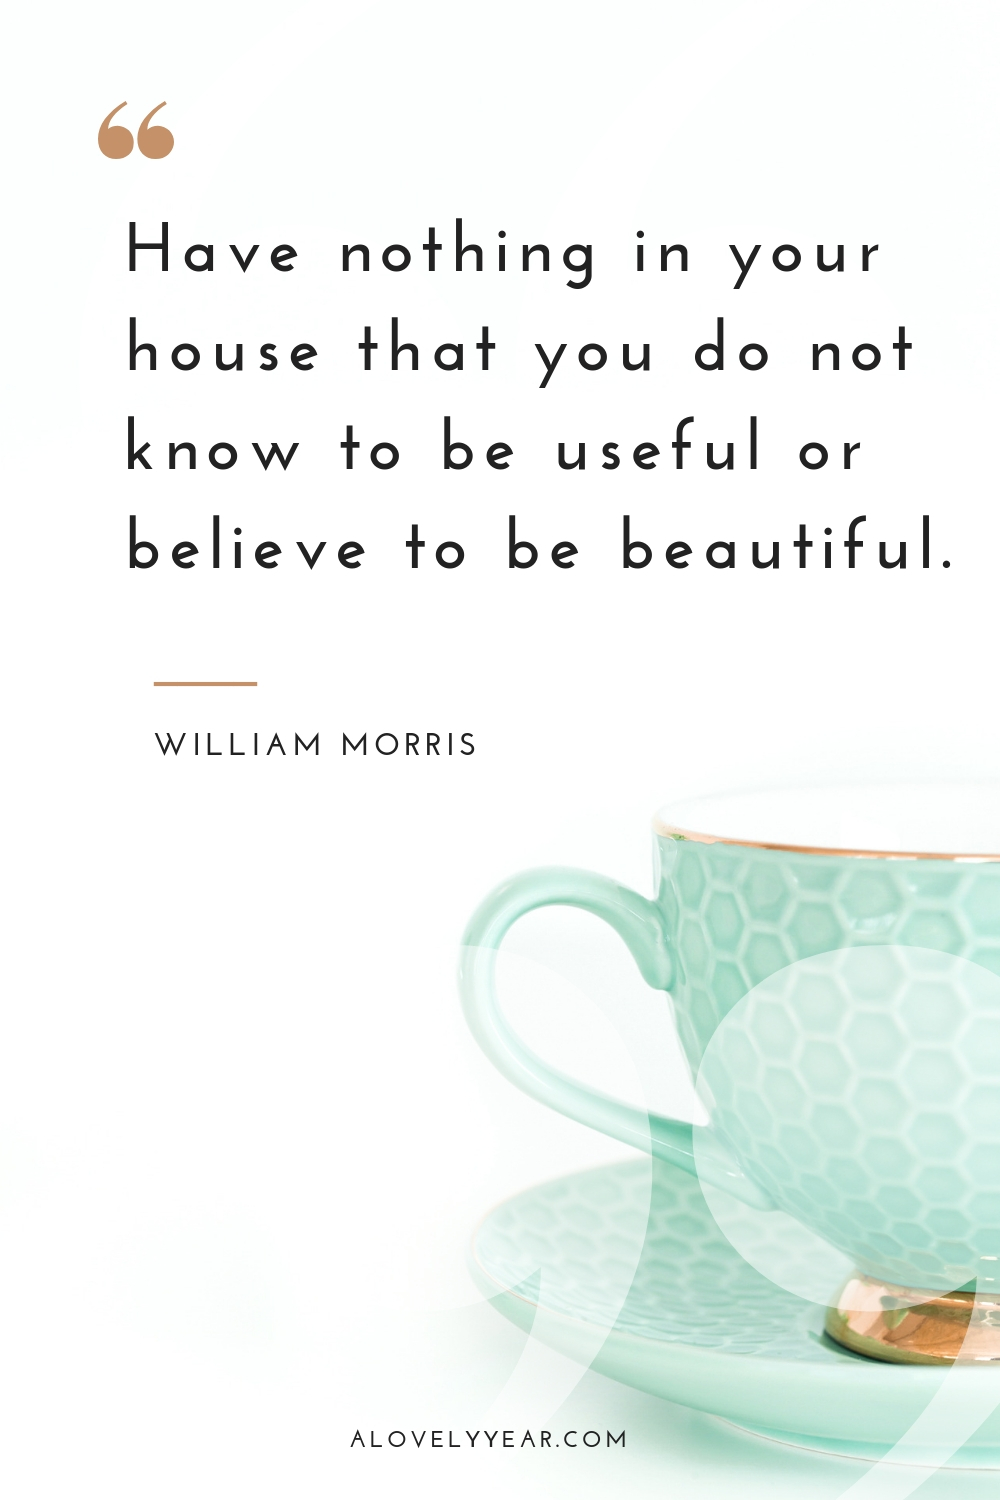 Decluttering quotes to inspire you into action   Have nothing in your house that you do not know to be useful or believe to be beautiful - William Morris